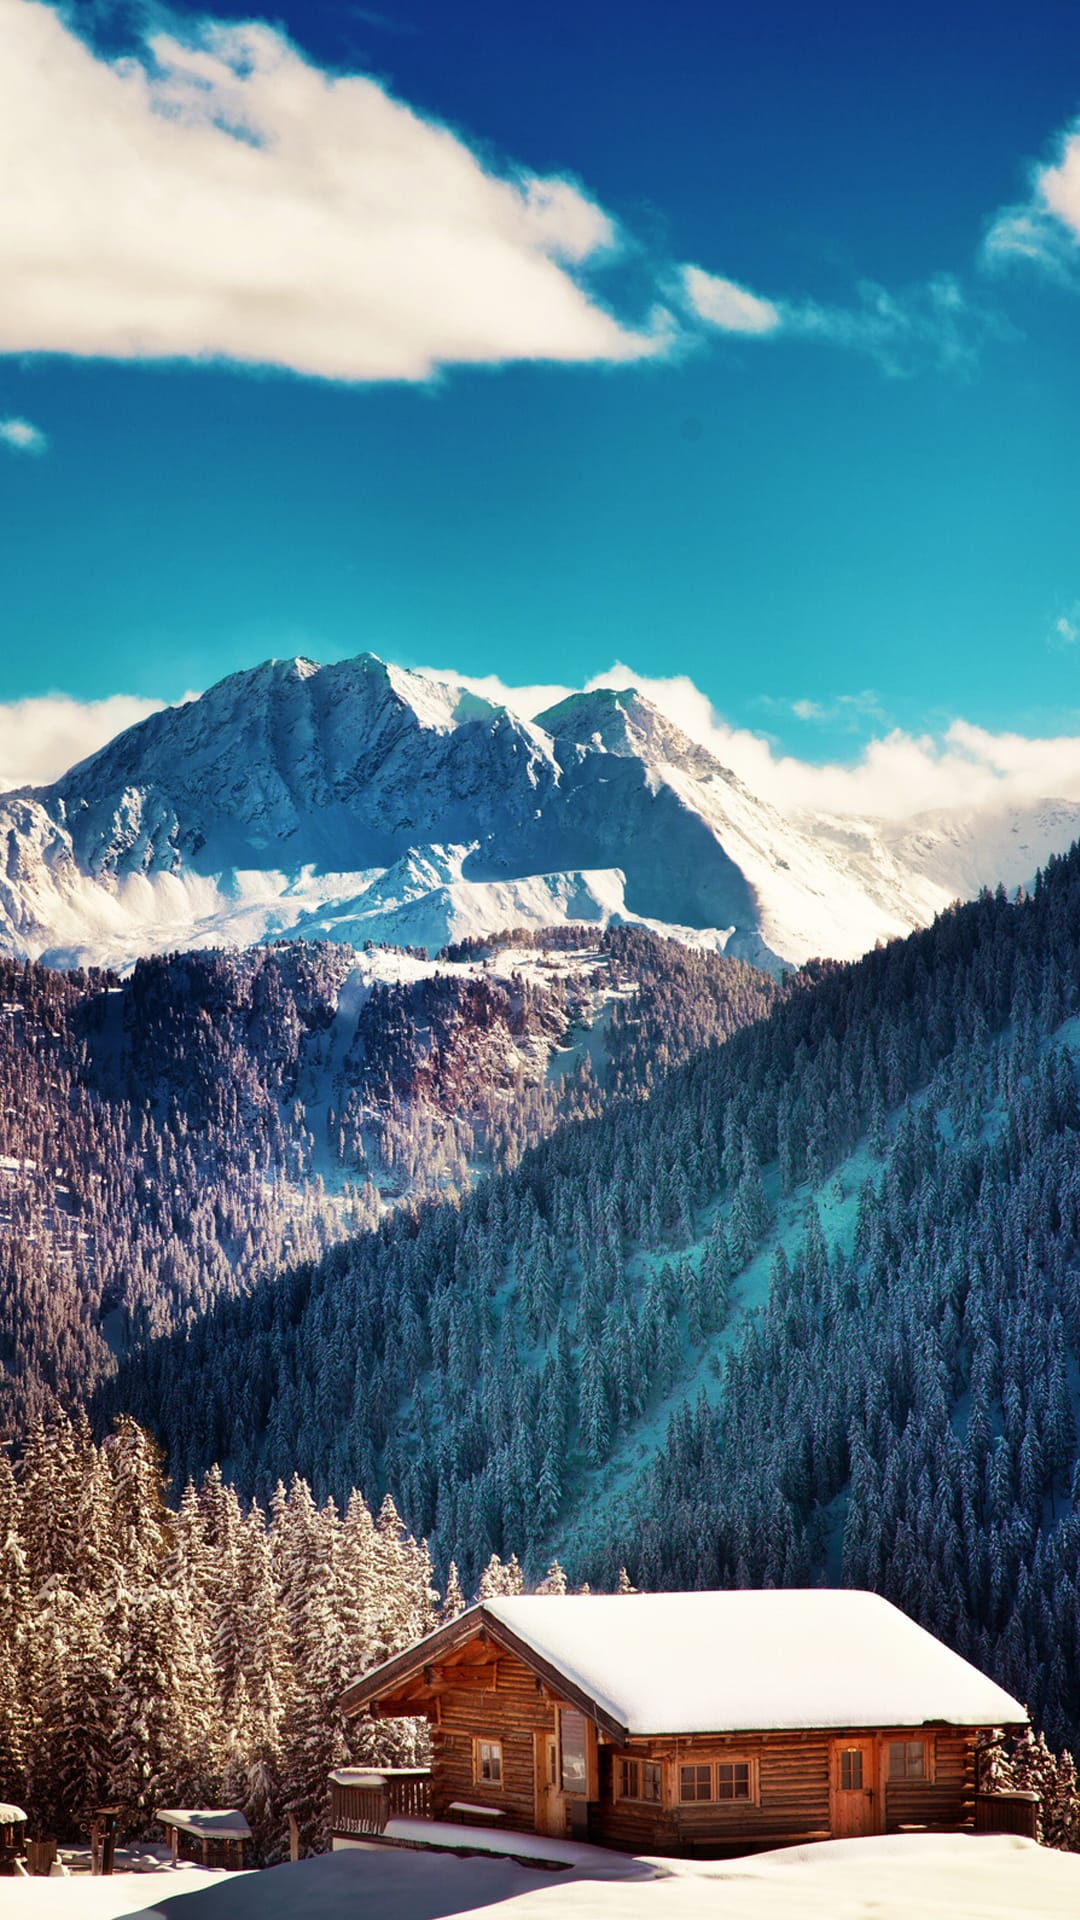 Mountains Chalet Blue Sky Android Wallpaper